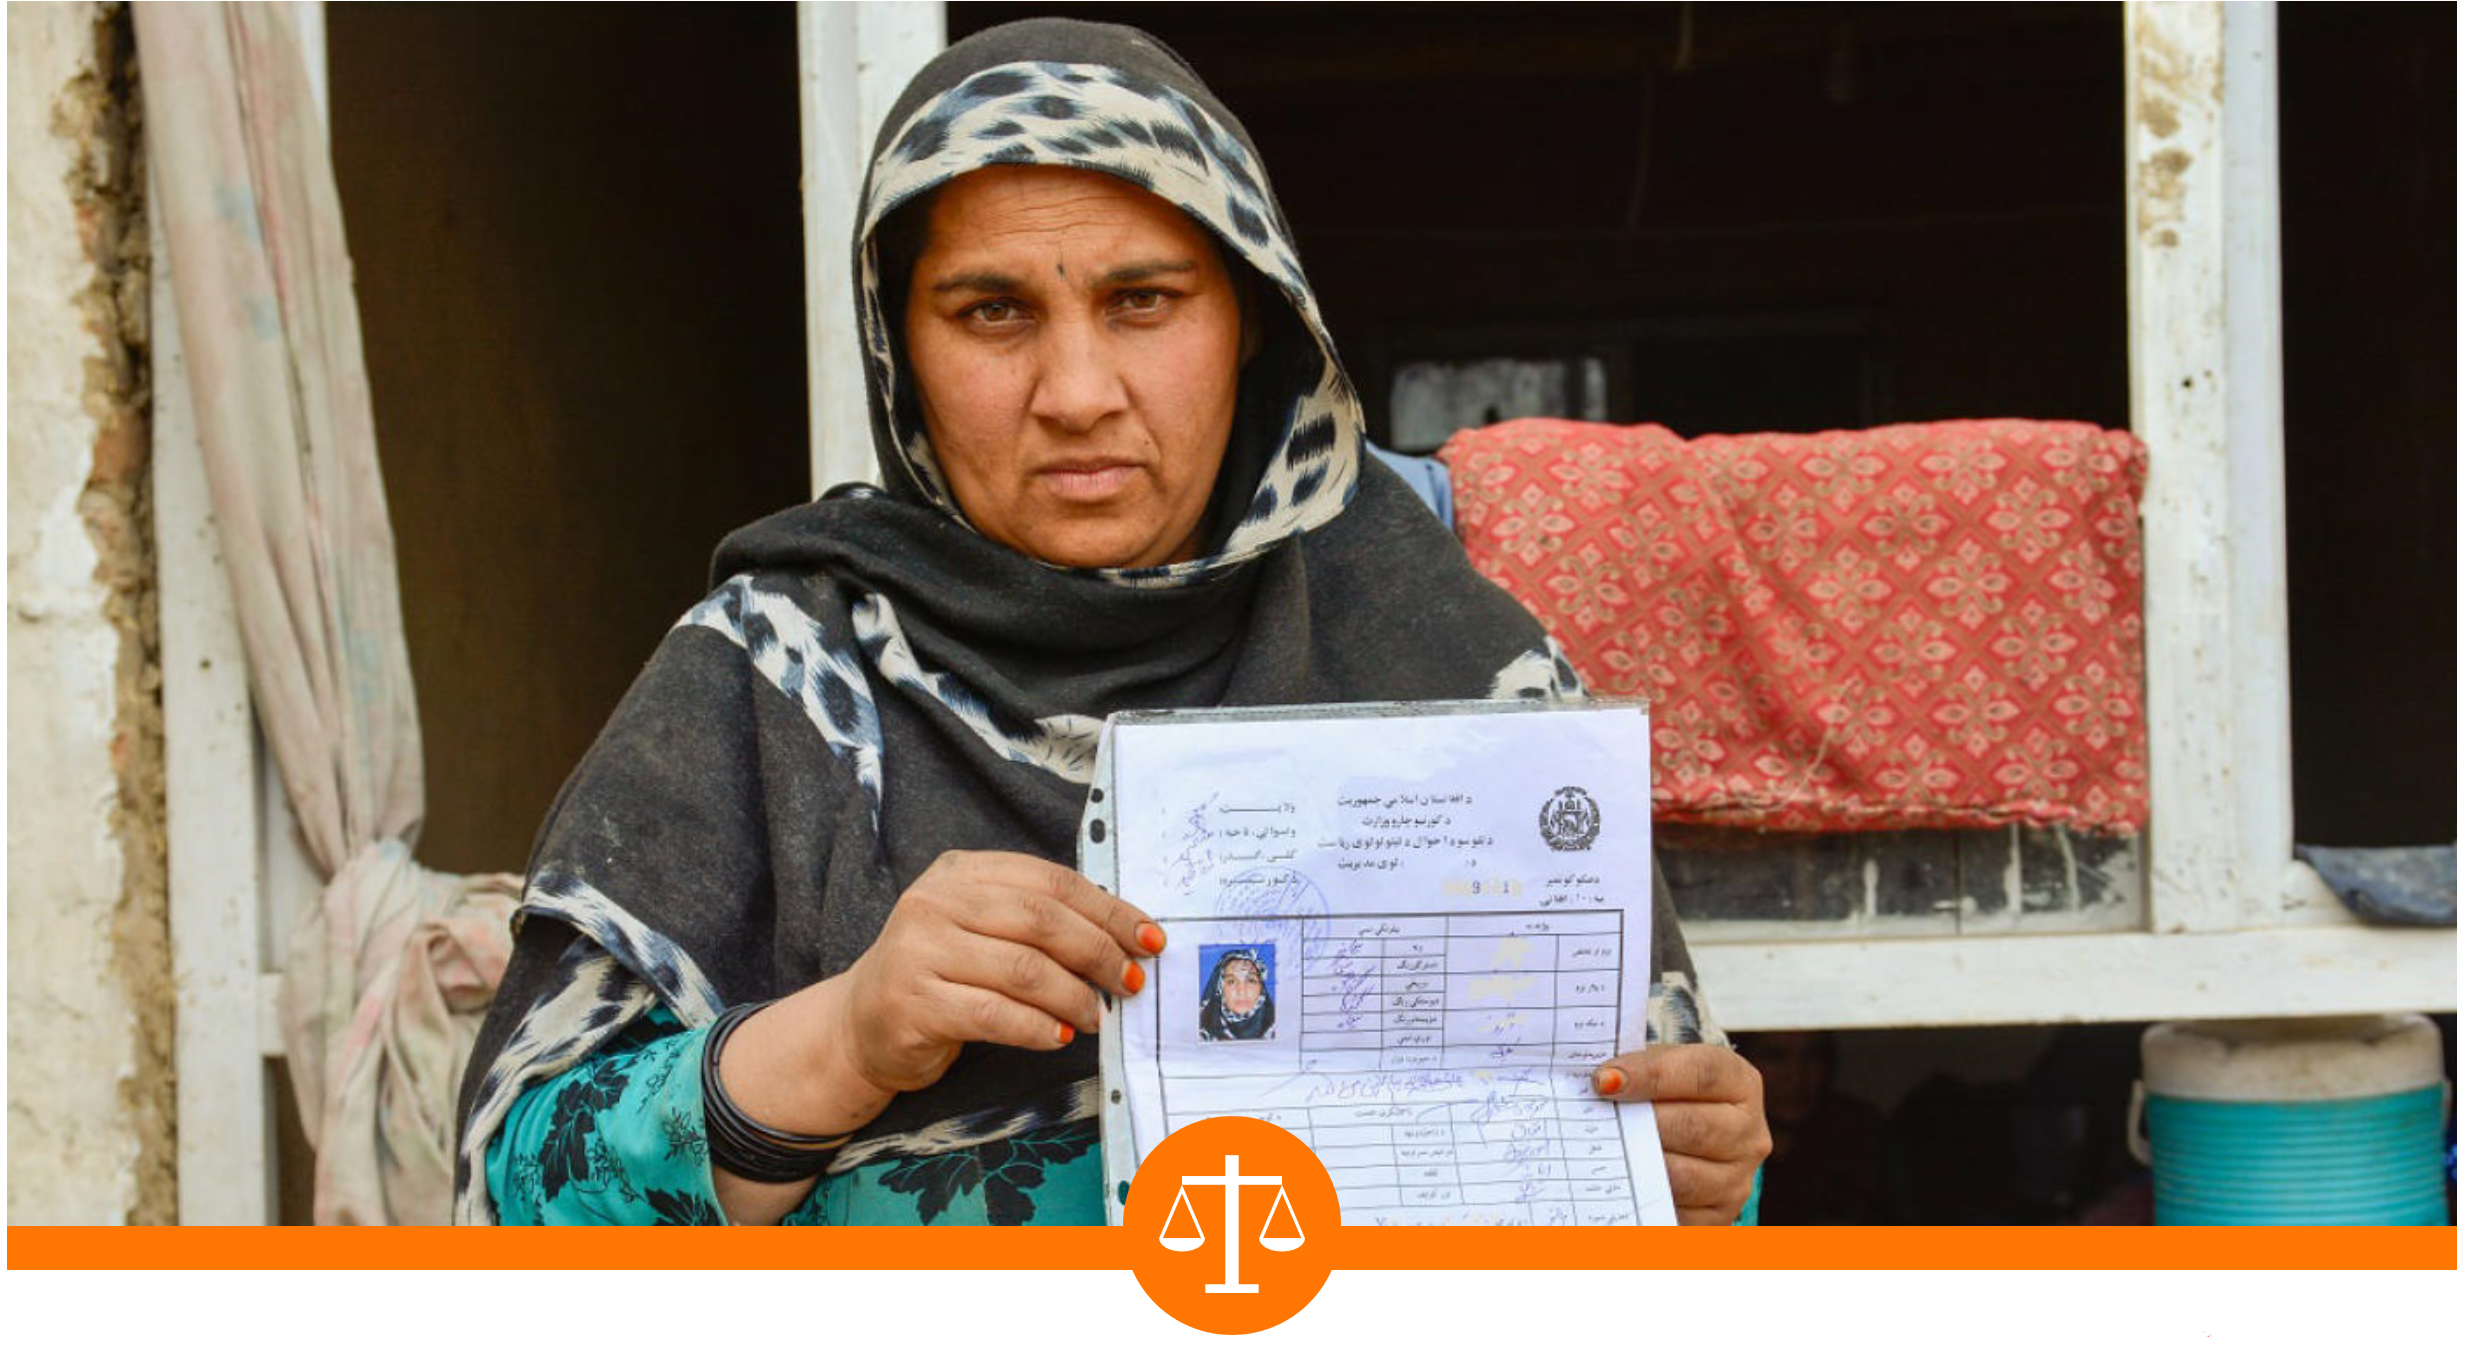 Forty-year-old Zia Gull has seven children, and her family is so poor that she could not apply for an ID card by herself. NRC helped her obtain the document in Kabul, Afghanistan. Photo: Enayatullah Azad/NRC